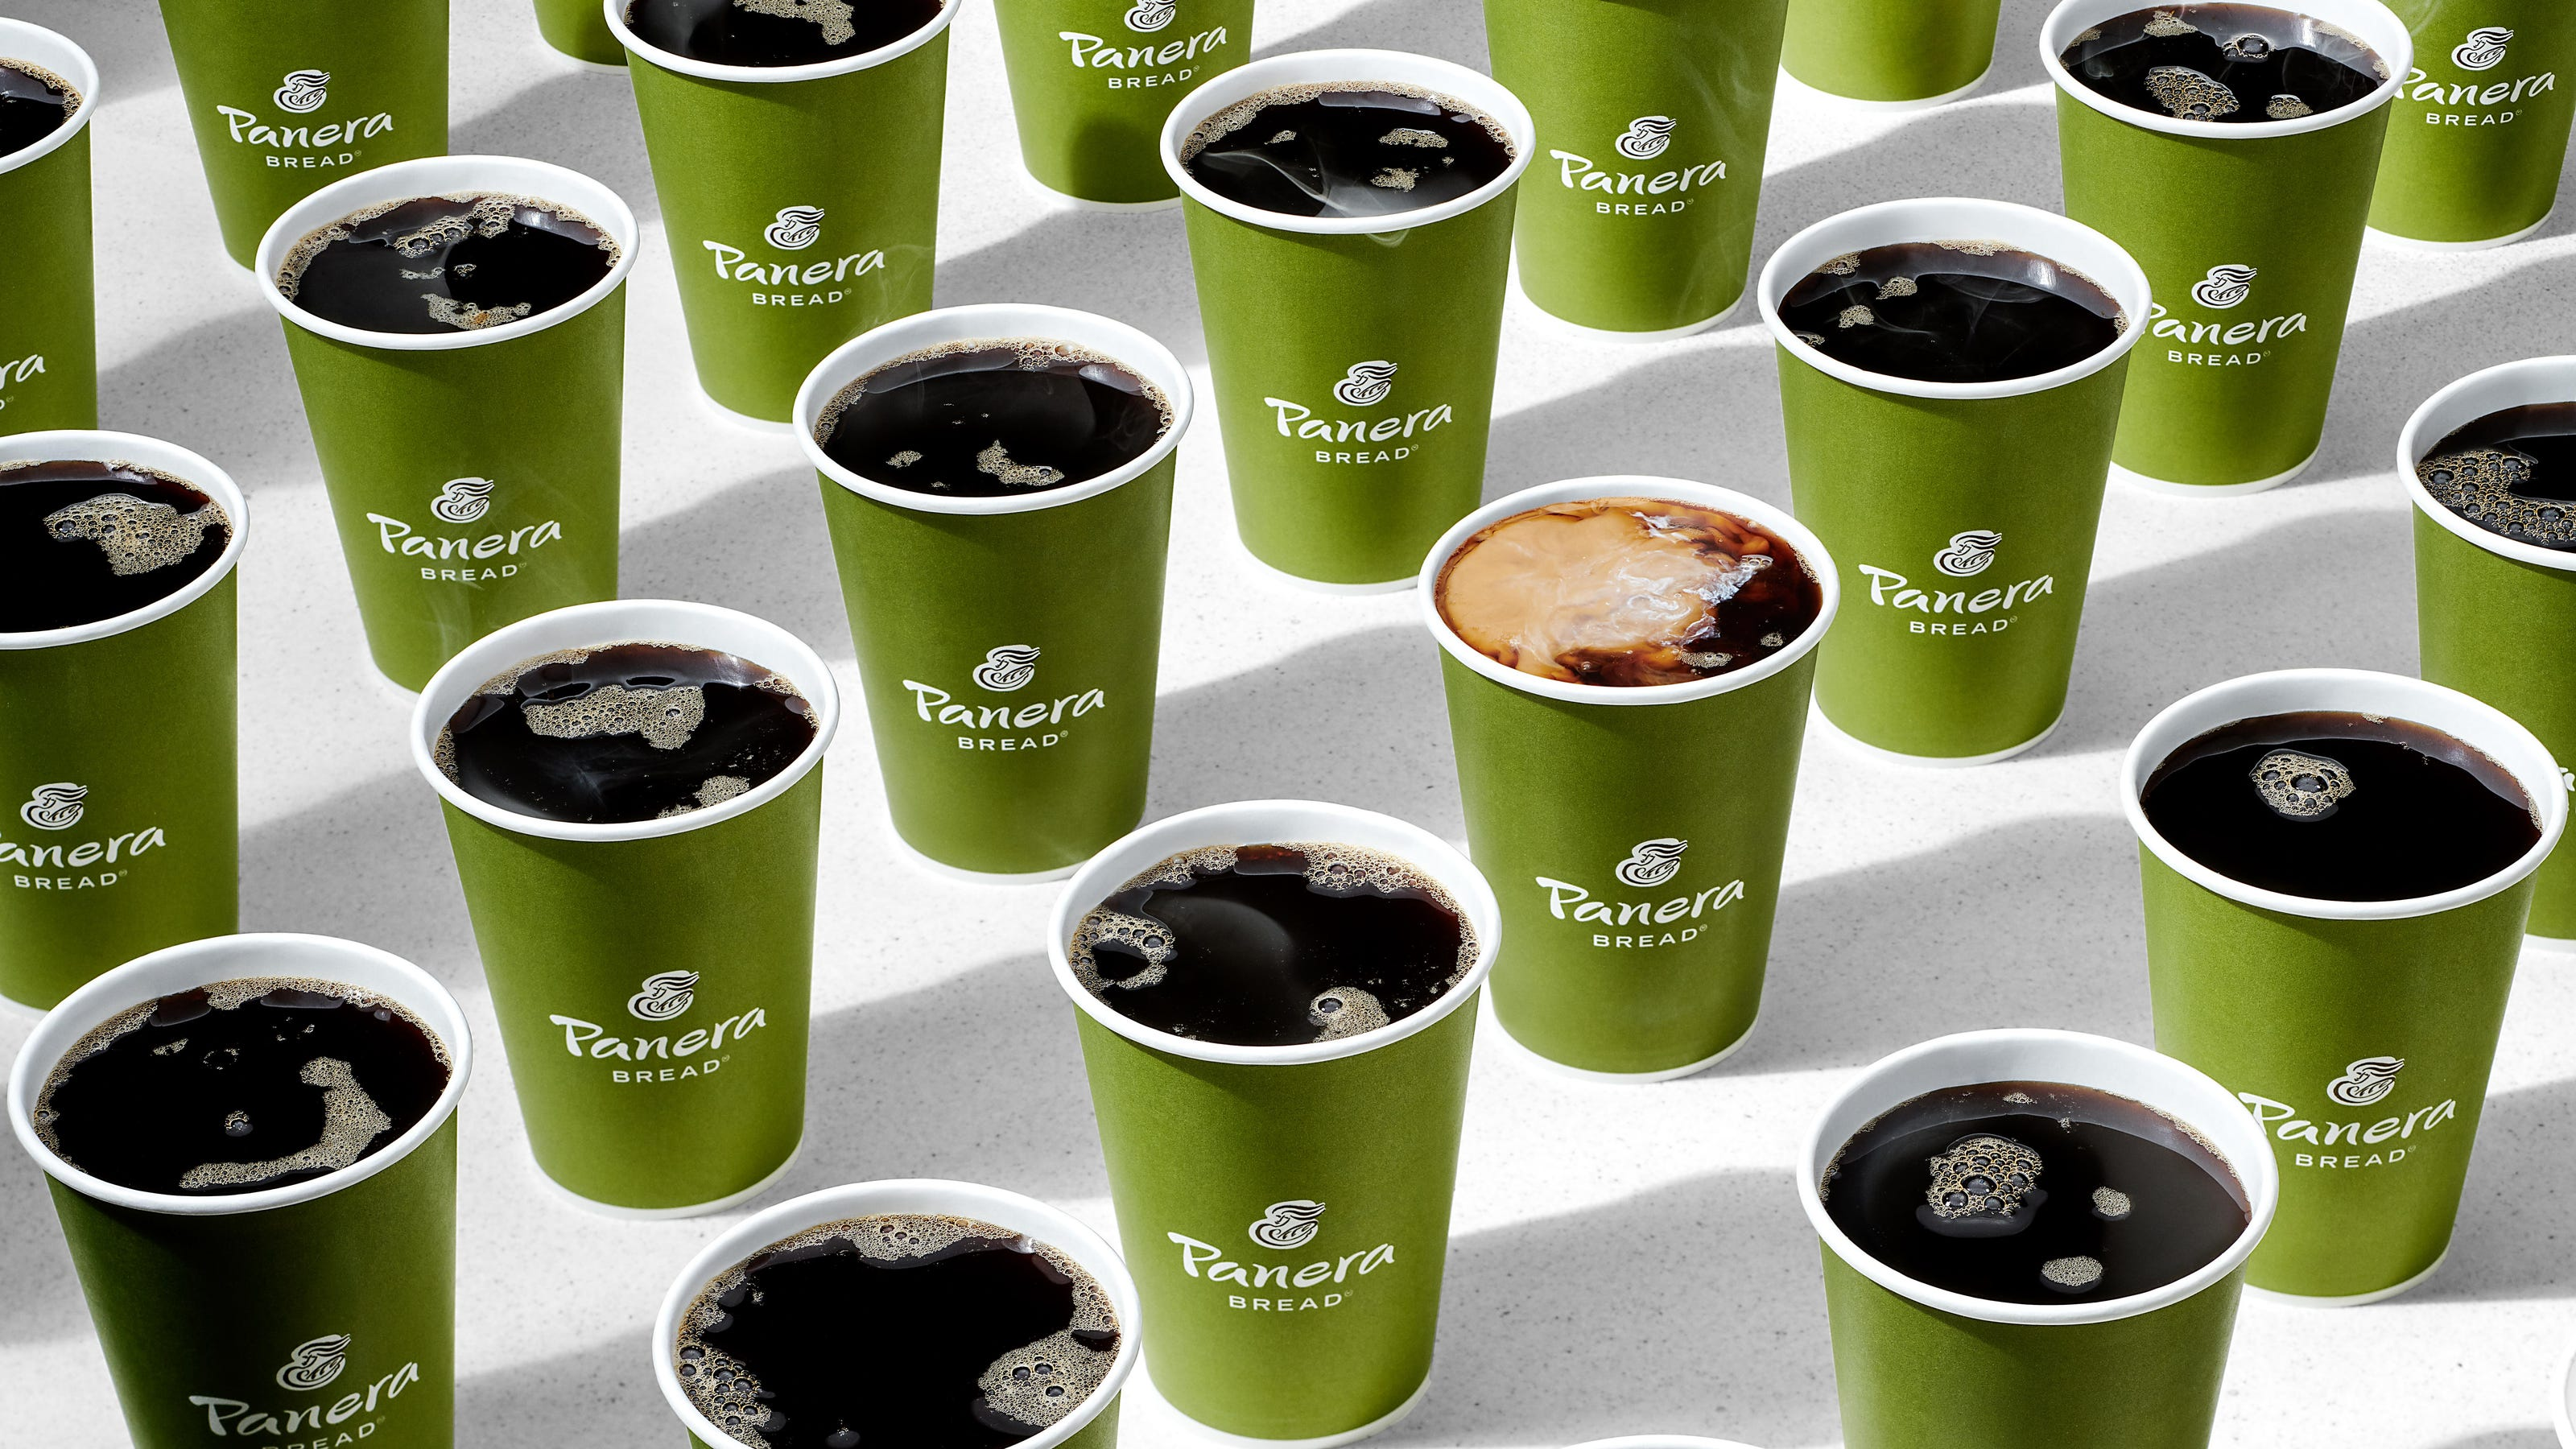 Panera's unlimited coffee program has nearly 500K paid subscribers